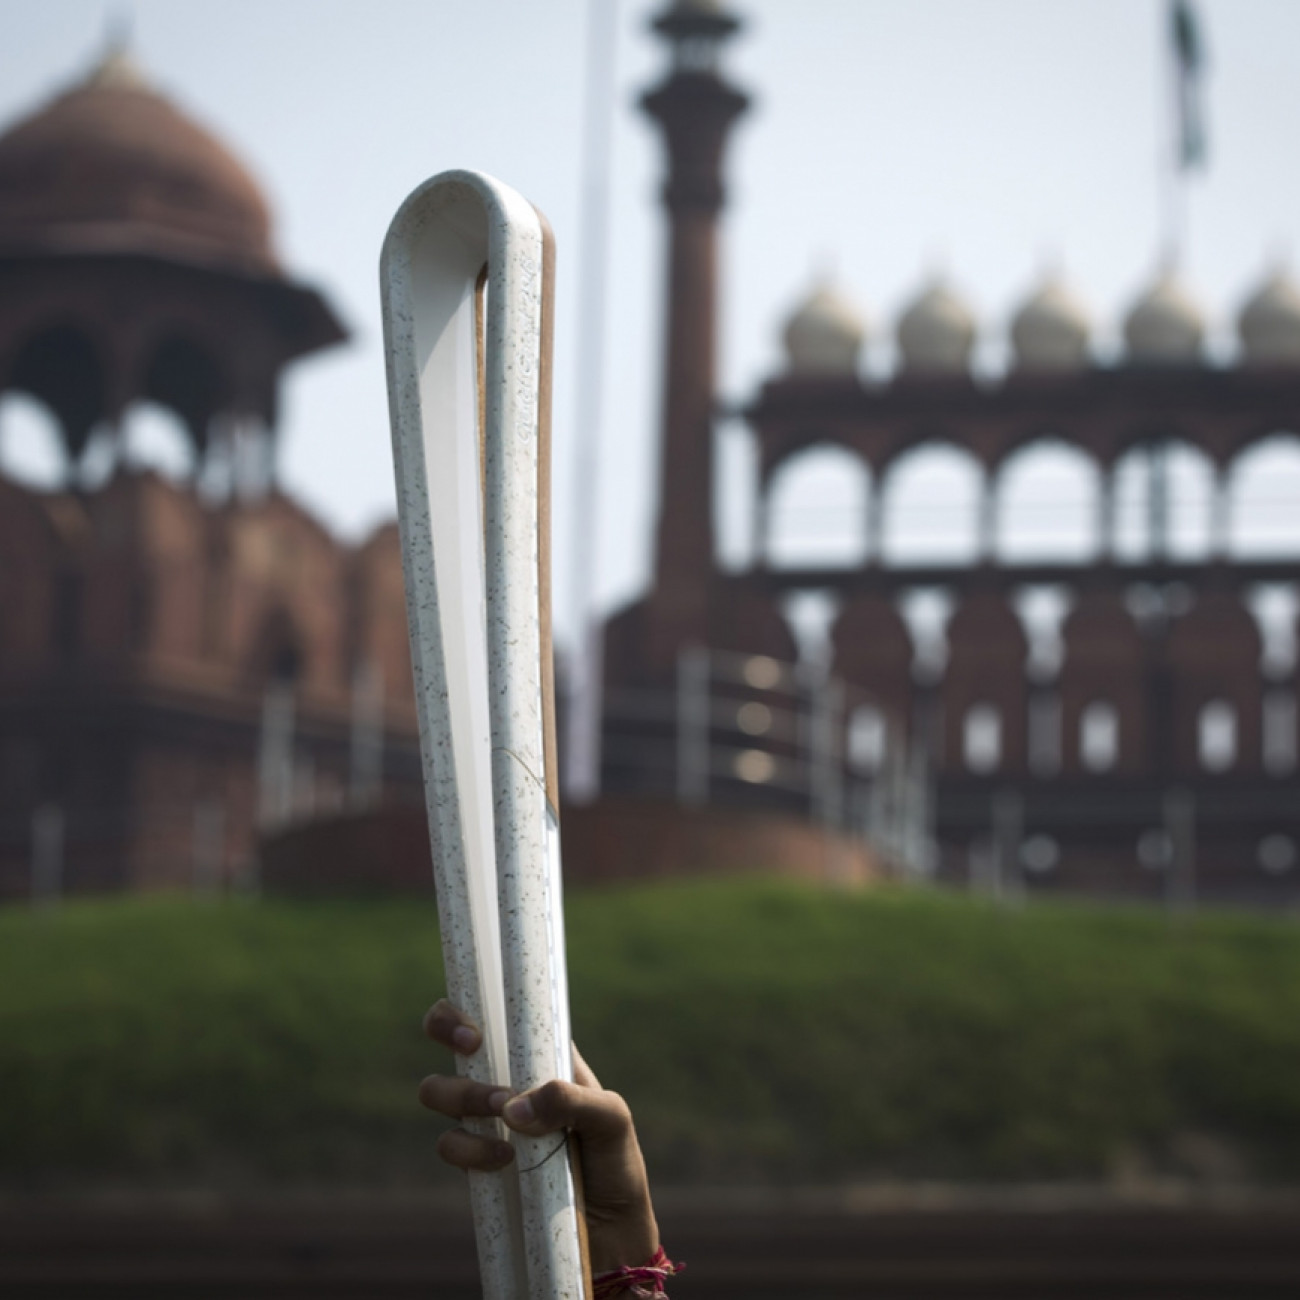 The Baton at the Red Fort complex during a visit by the QBR to the World Heritage centre